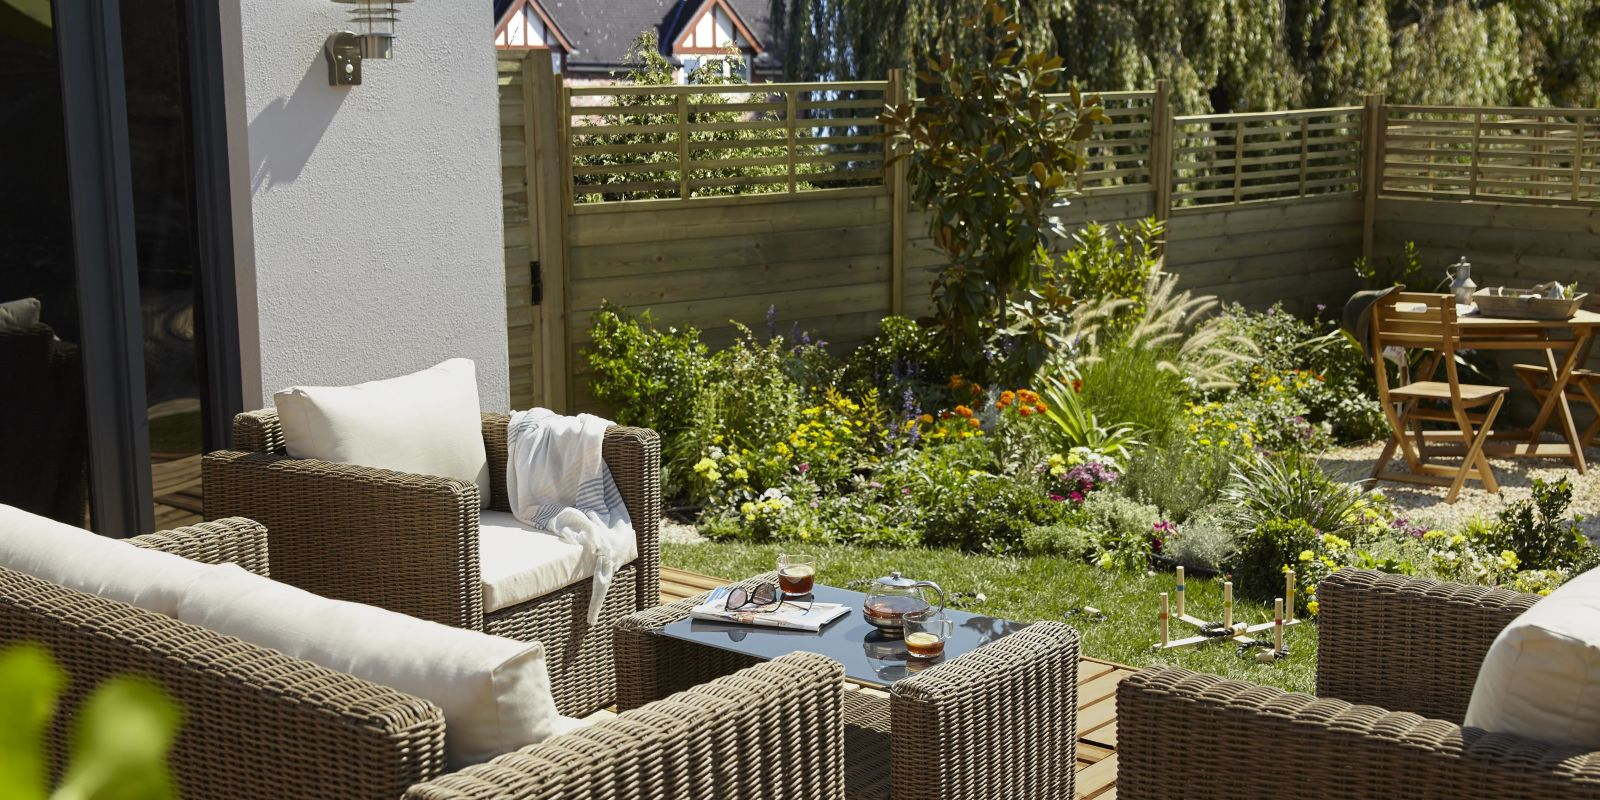 Gardens are considered an 'unattainable luxury' for Londoners